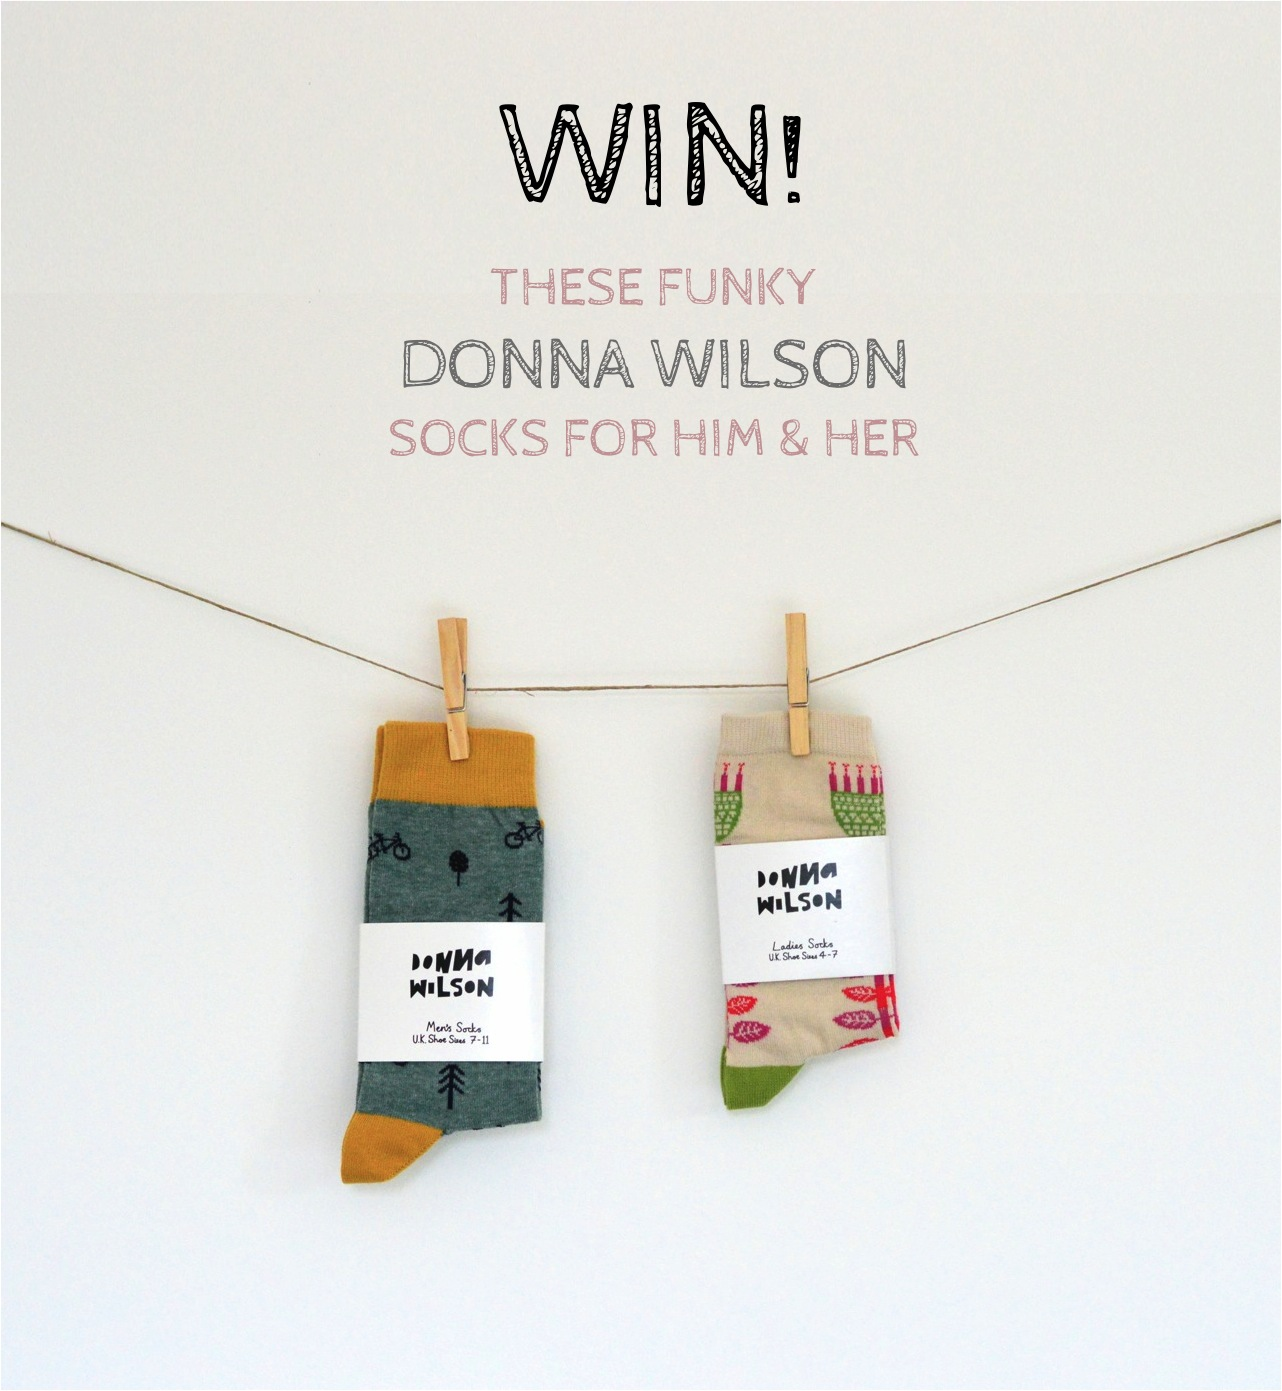 donna wilson socks giveaway